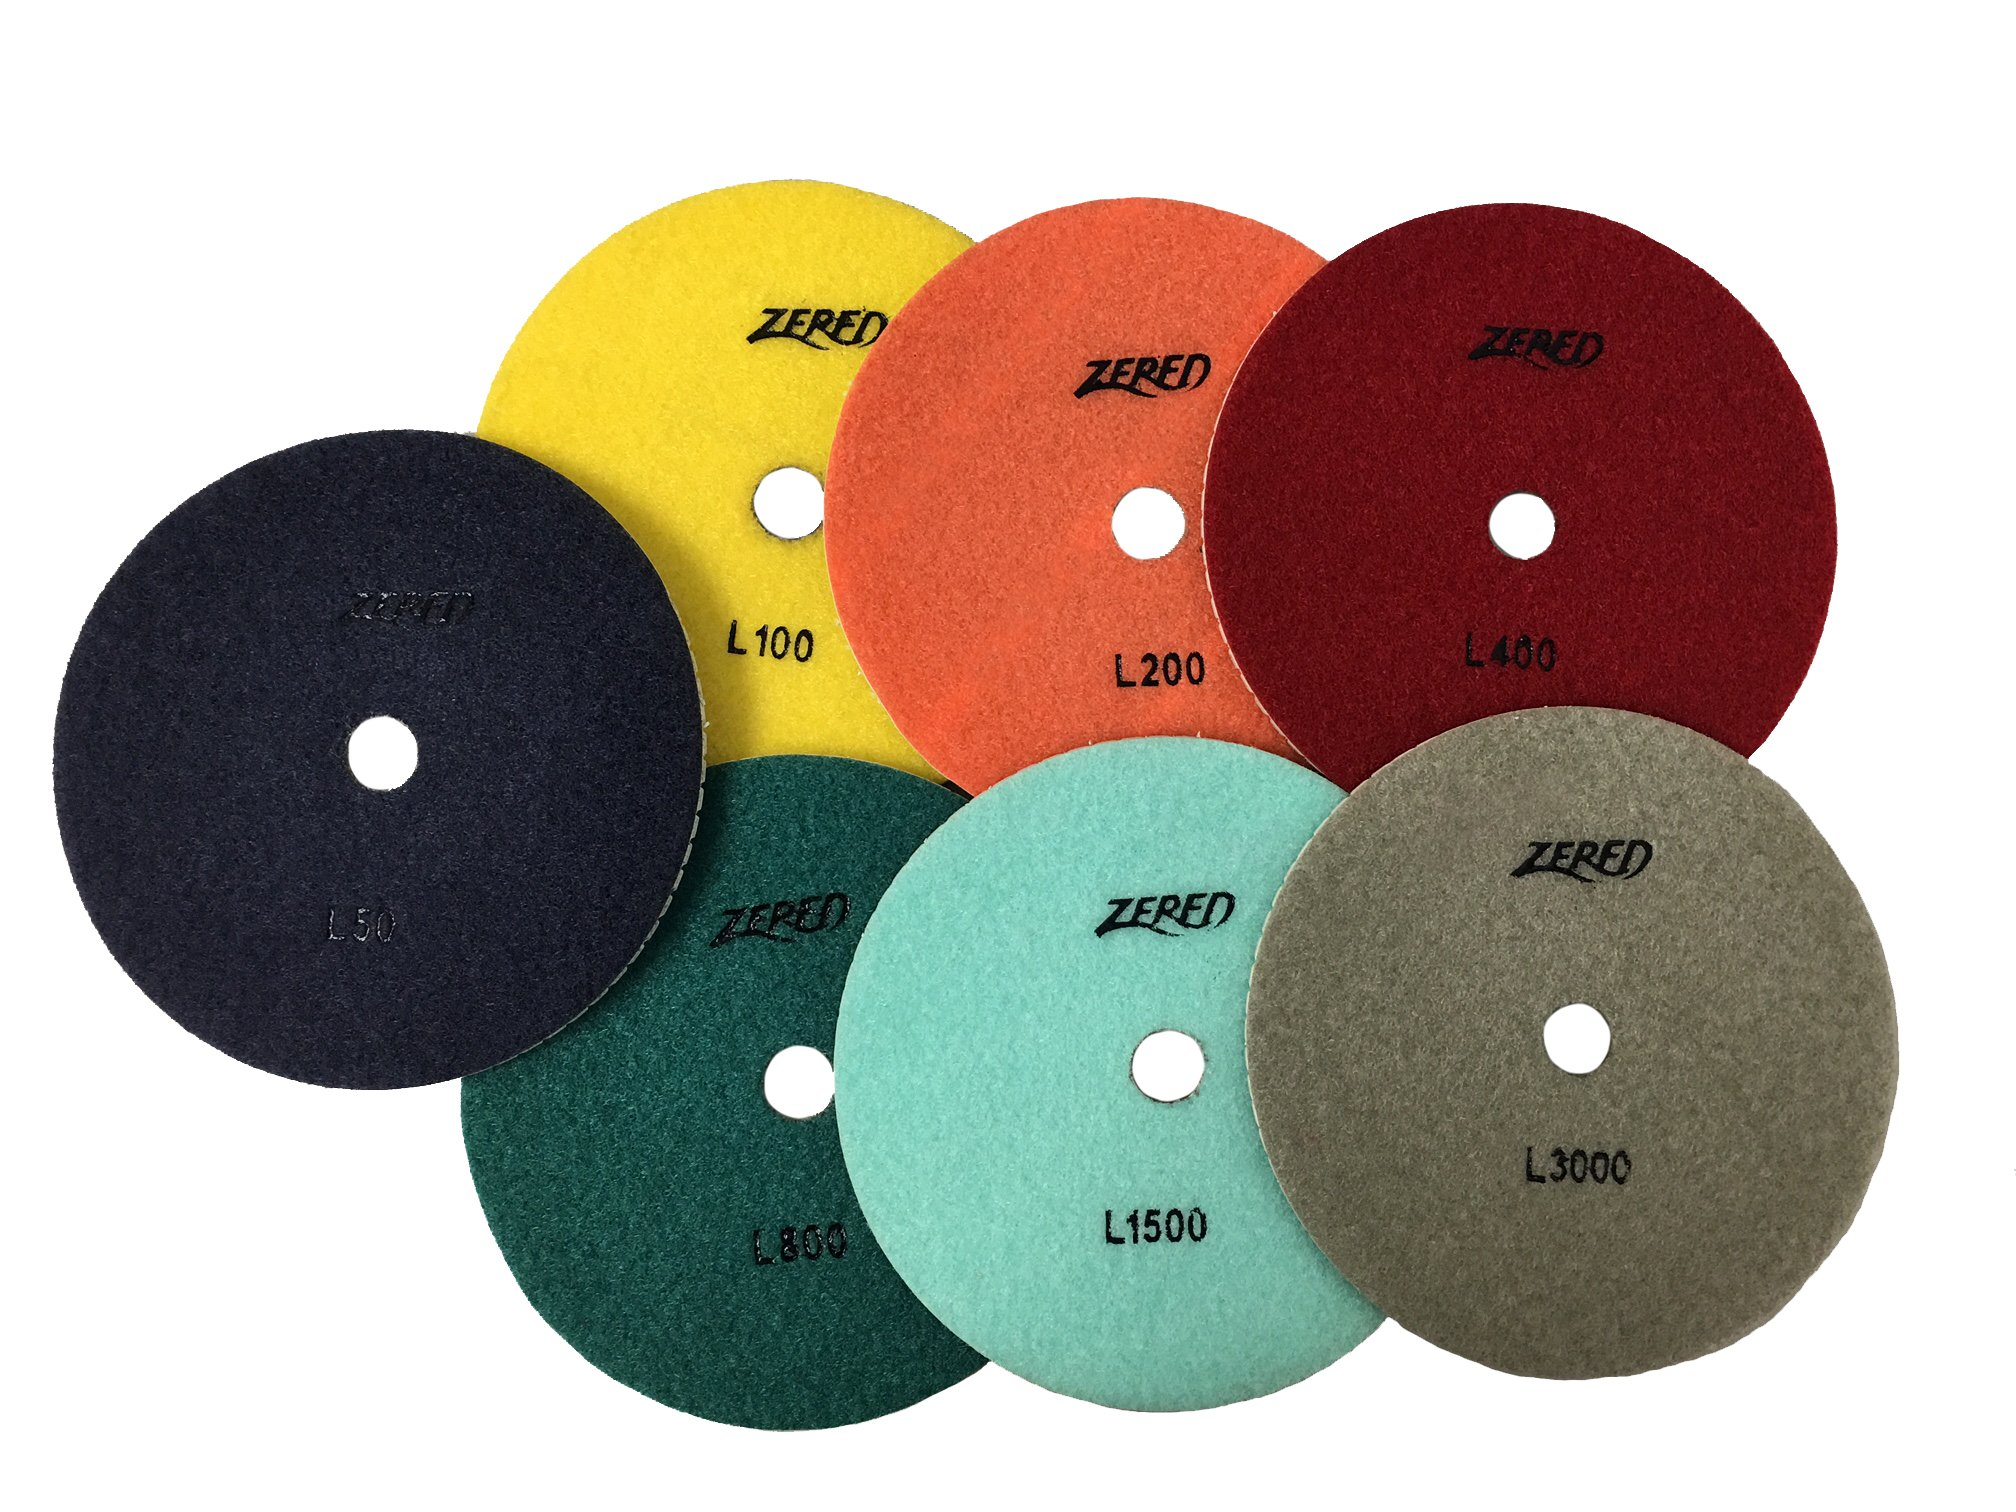 Zered PP7-L 4 in.Diamond Polishing Pads-Series L (Full Set (7 Pcs)) by Zered